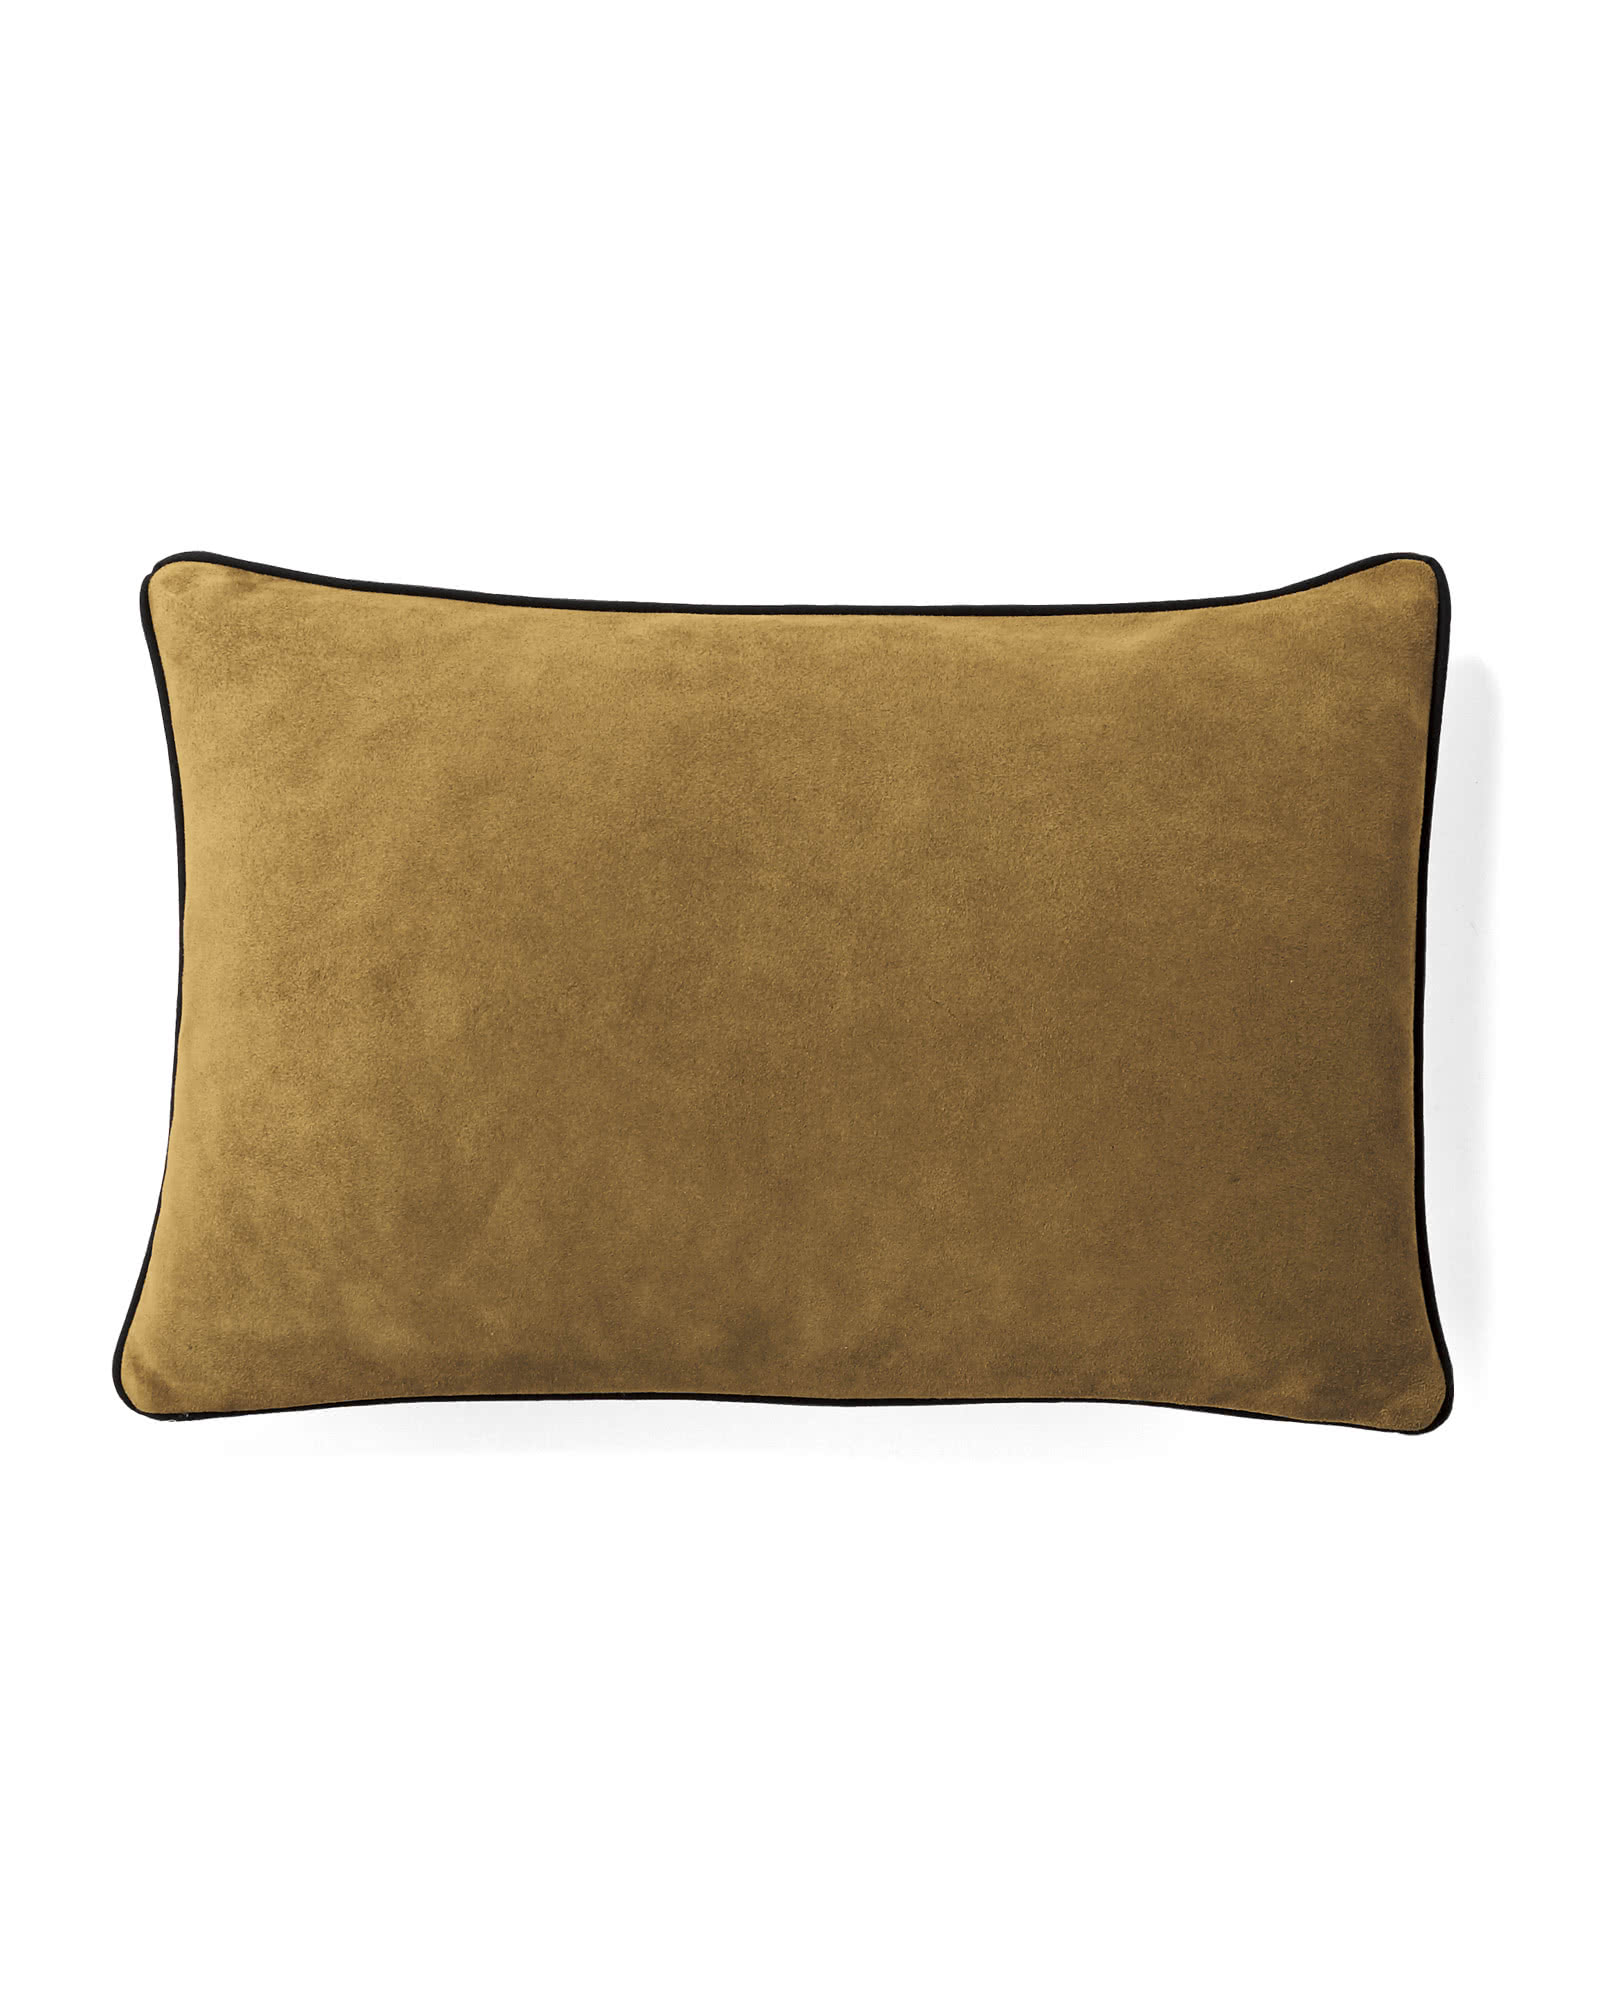 Suede Pillow Cover, Camel